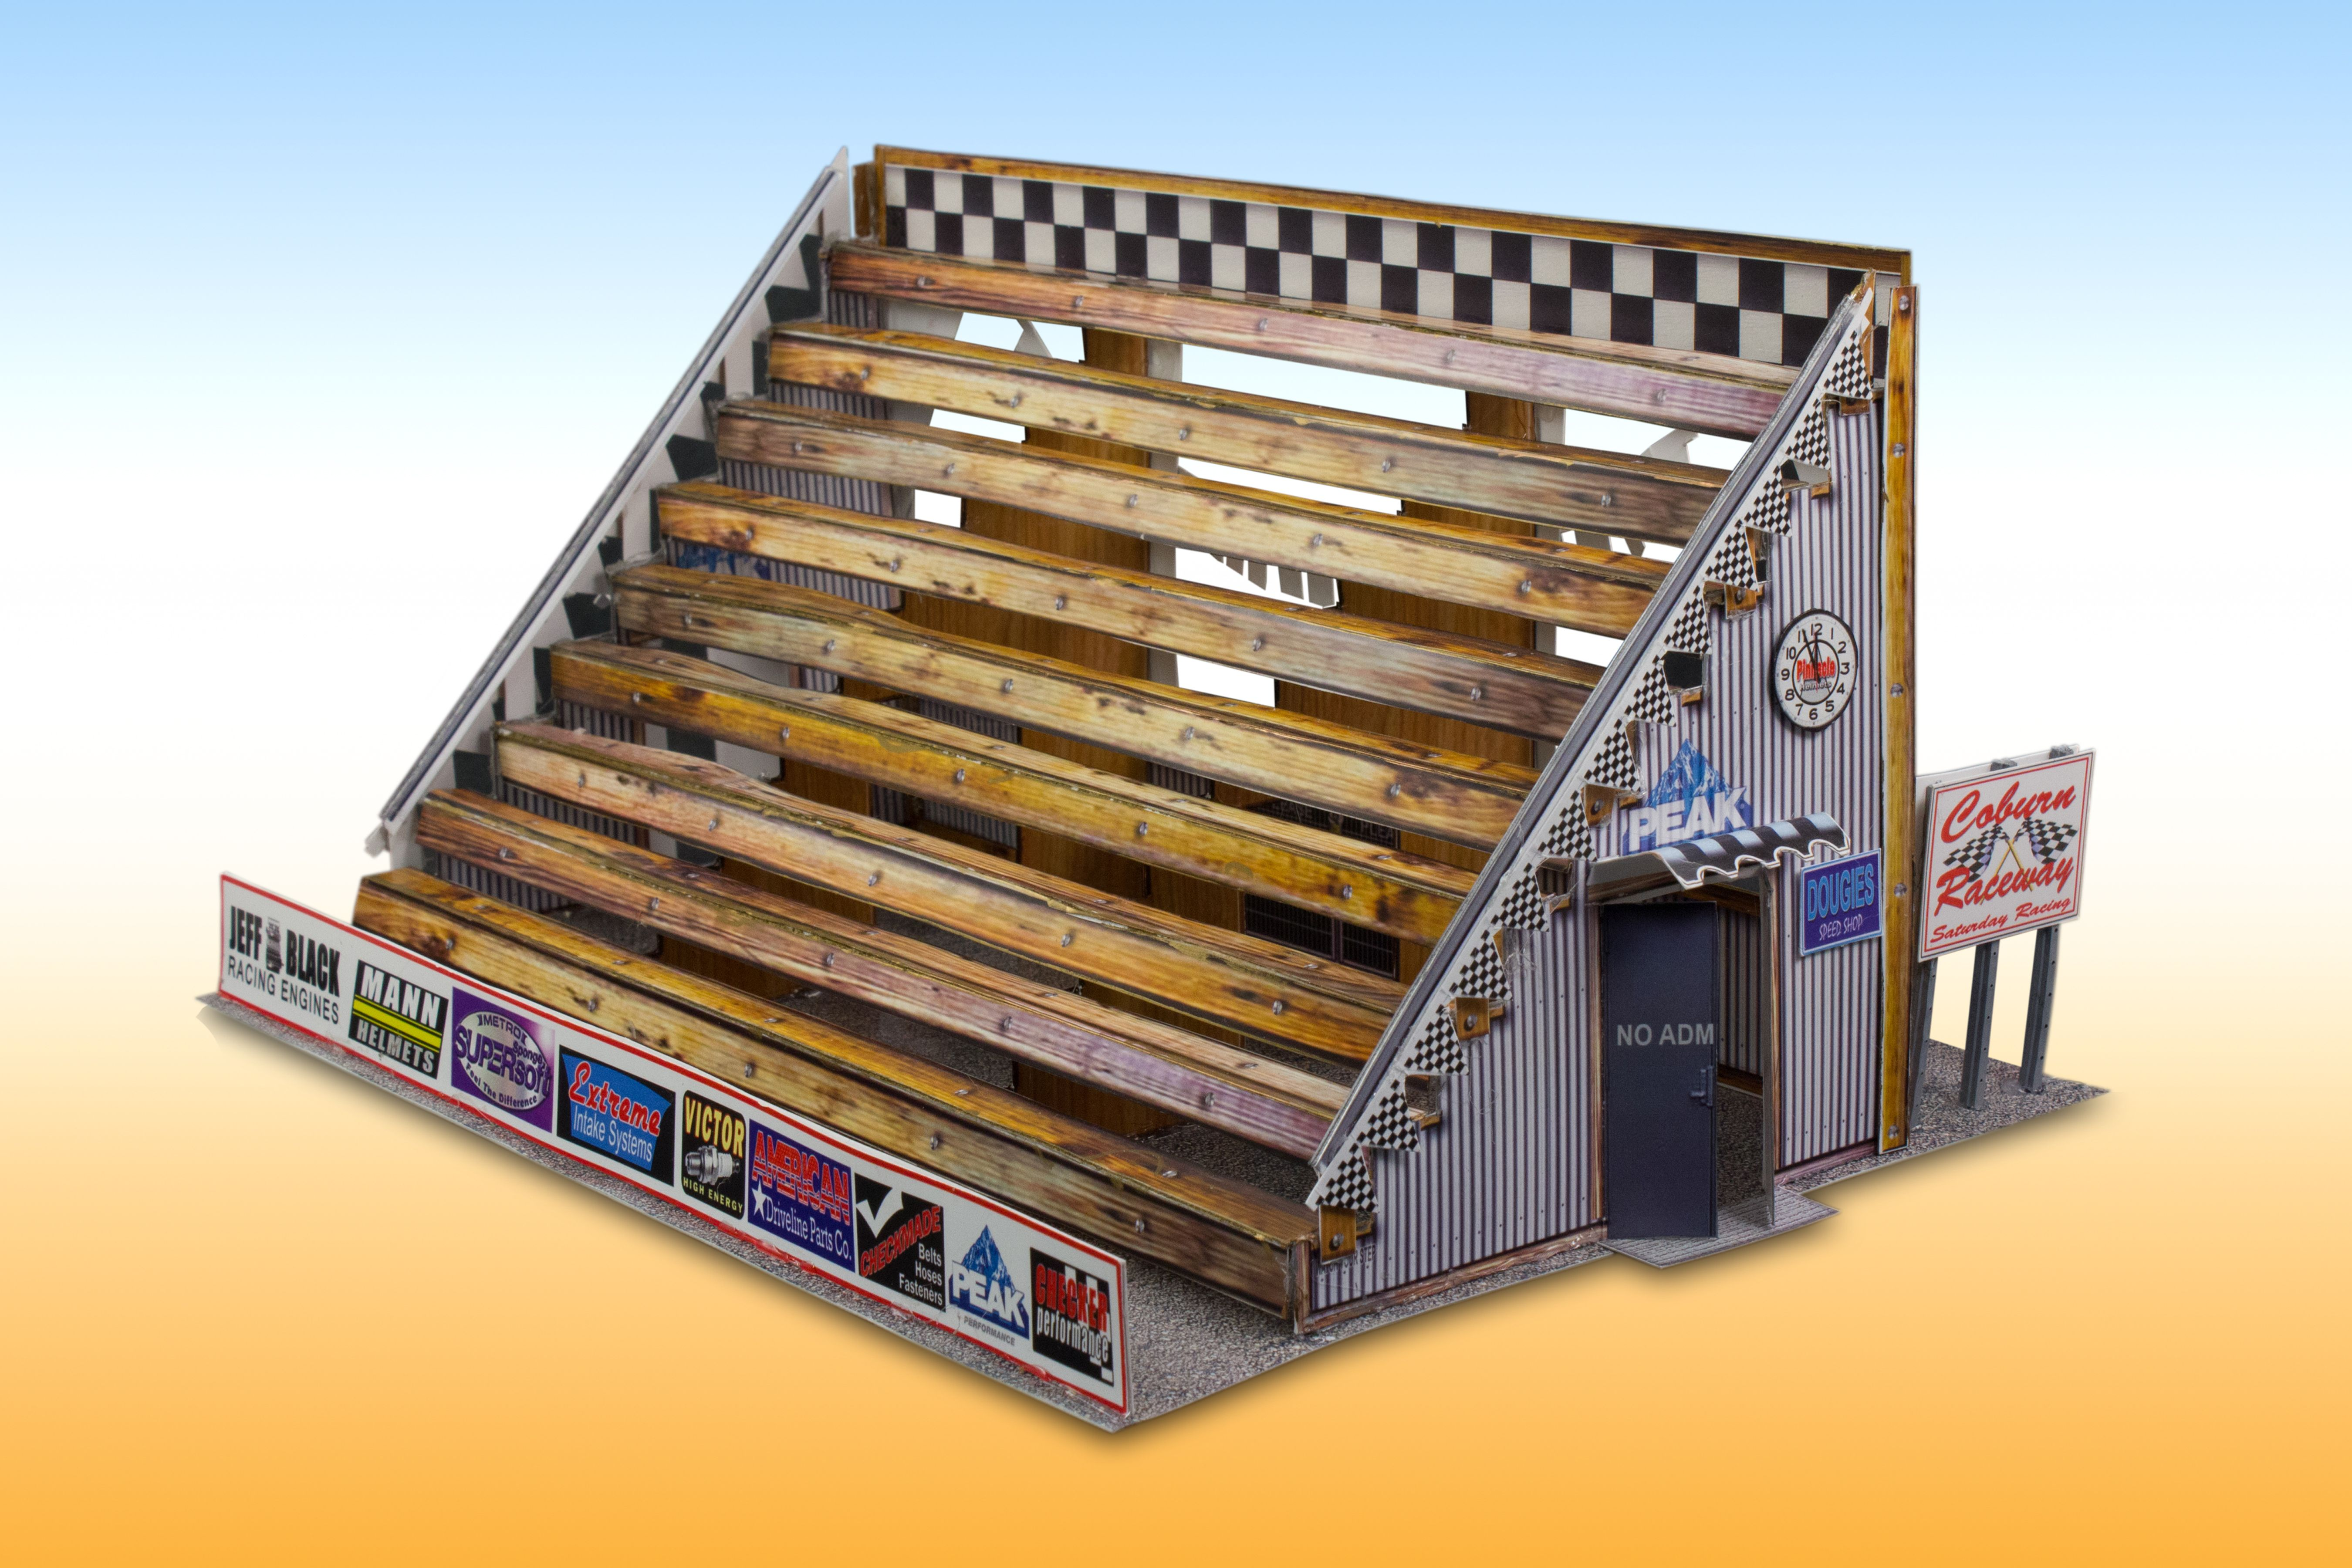 Racetrack Bleachers Photo Real Scale Building Kit Is A Complete Model Set